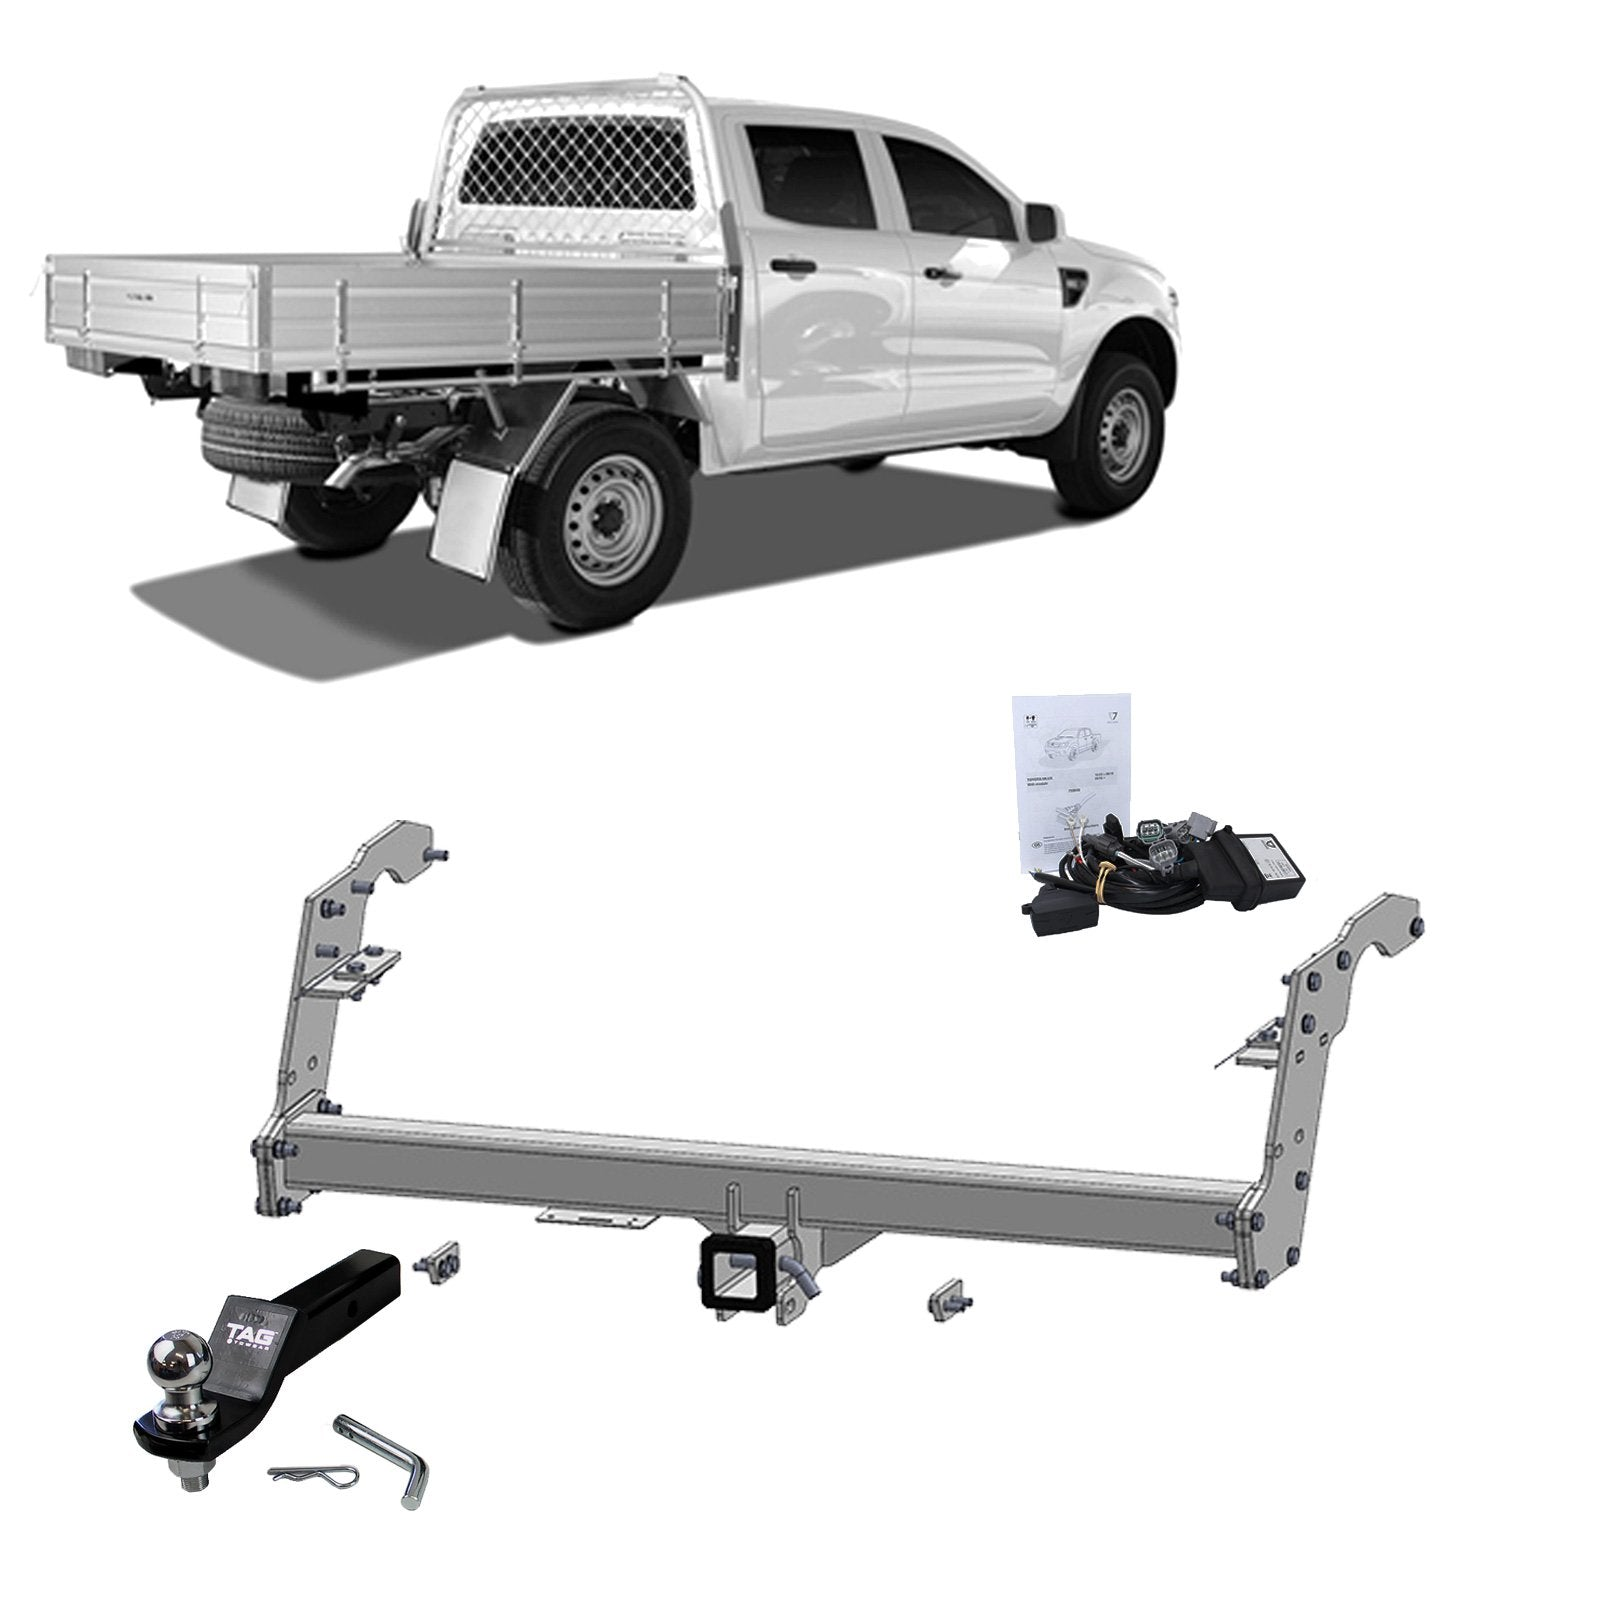 TAG Heavy Duty Towbar to suit Ford Ranger (09/2014 - 07/2015) - Direct Fit CAN-Bus Harness suits Vehicles with Black CAN Connector